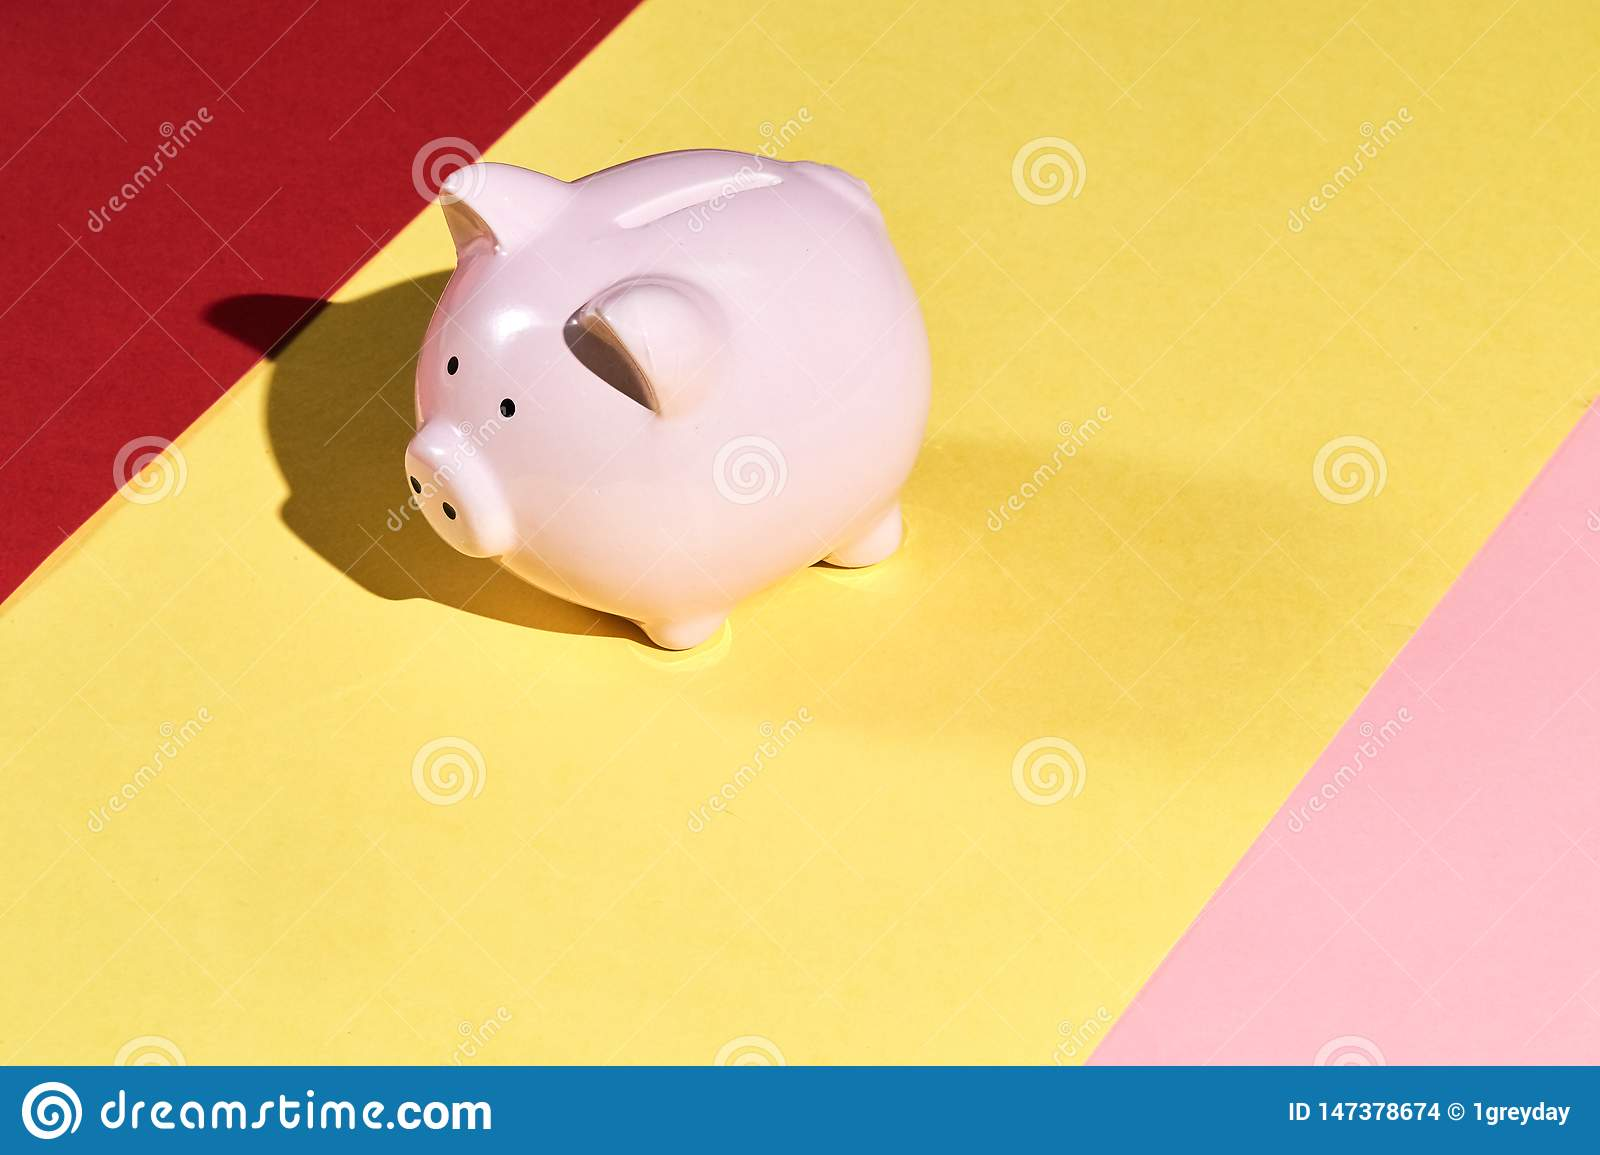 Beautiful pink piggy bank isolated on yellow, pink and red background